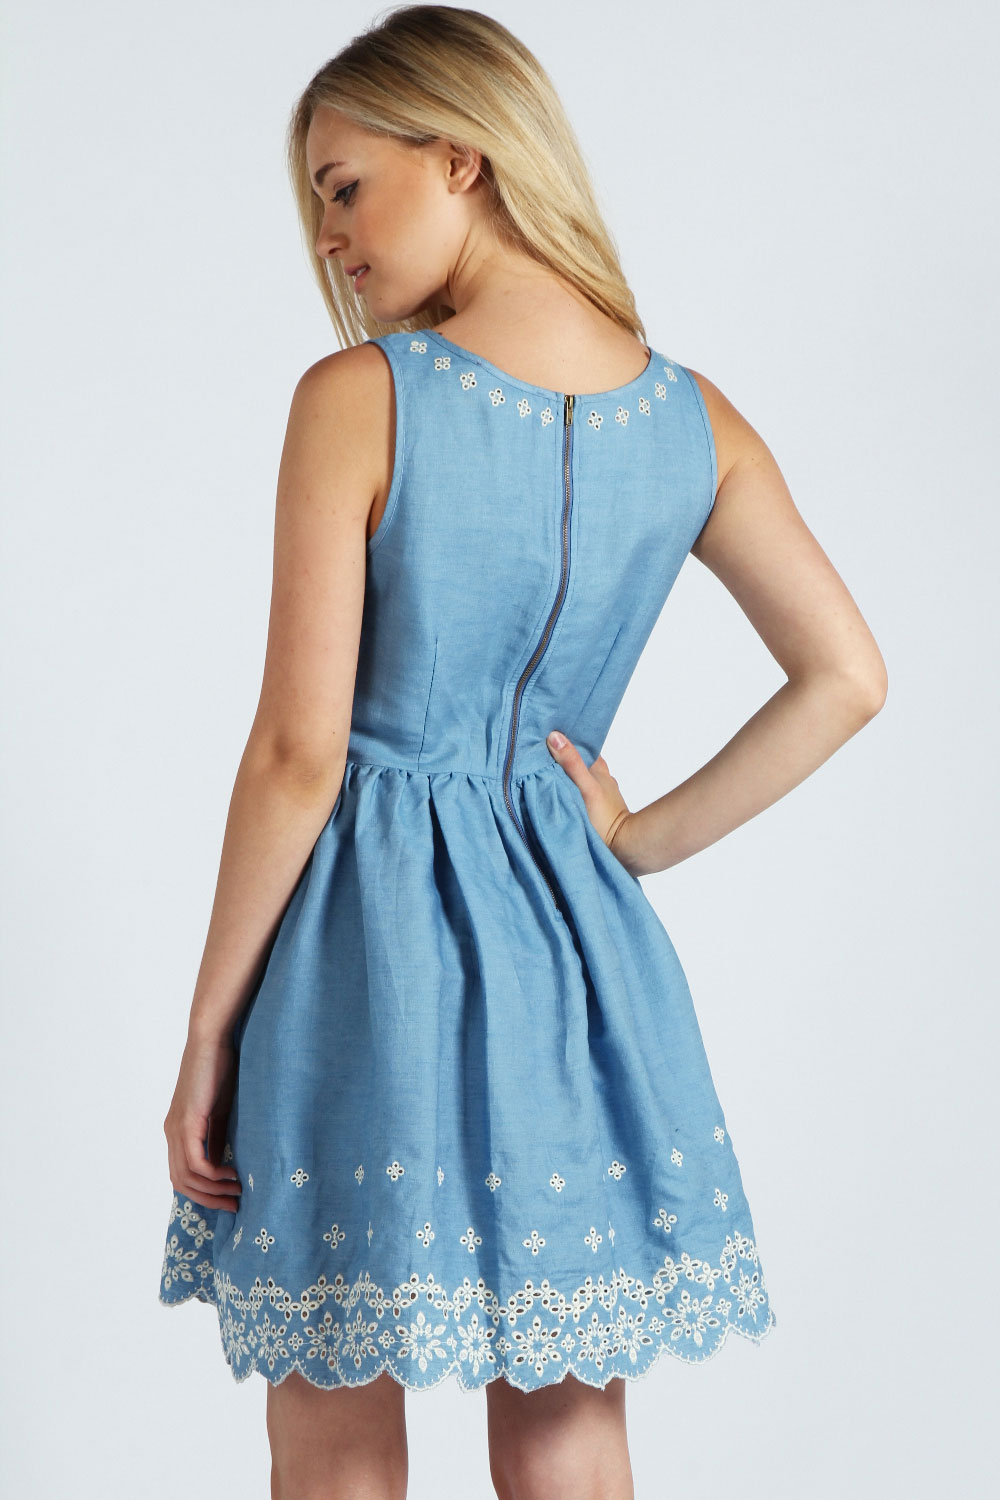 Jess Embroidered Hem Floral Denim Skirt Dress